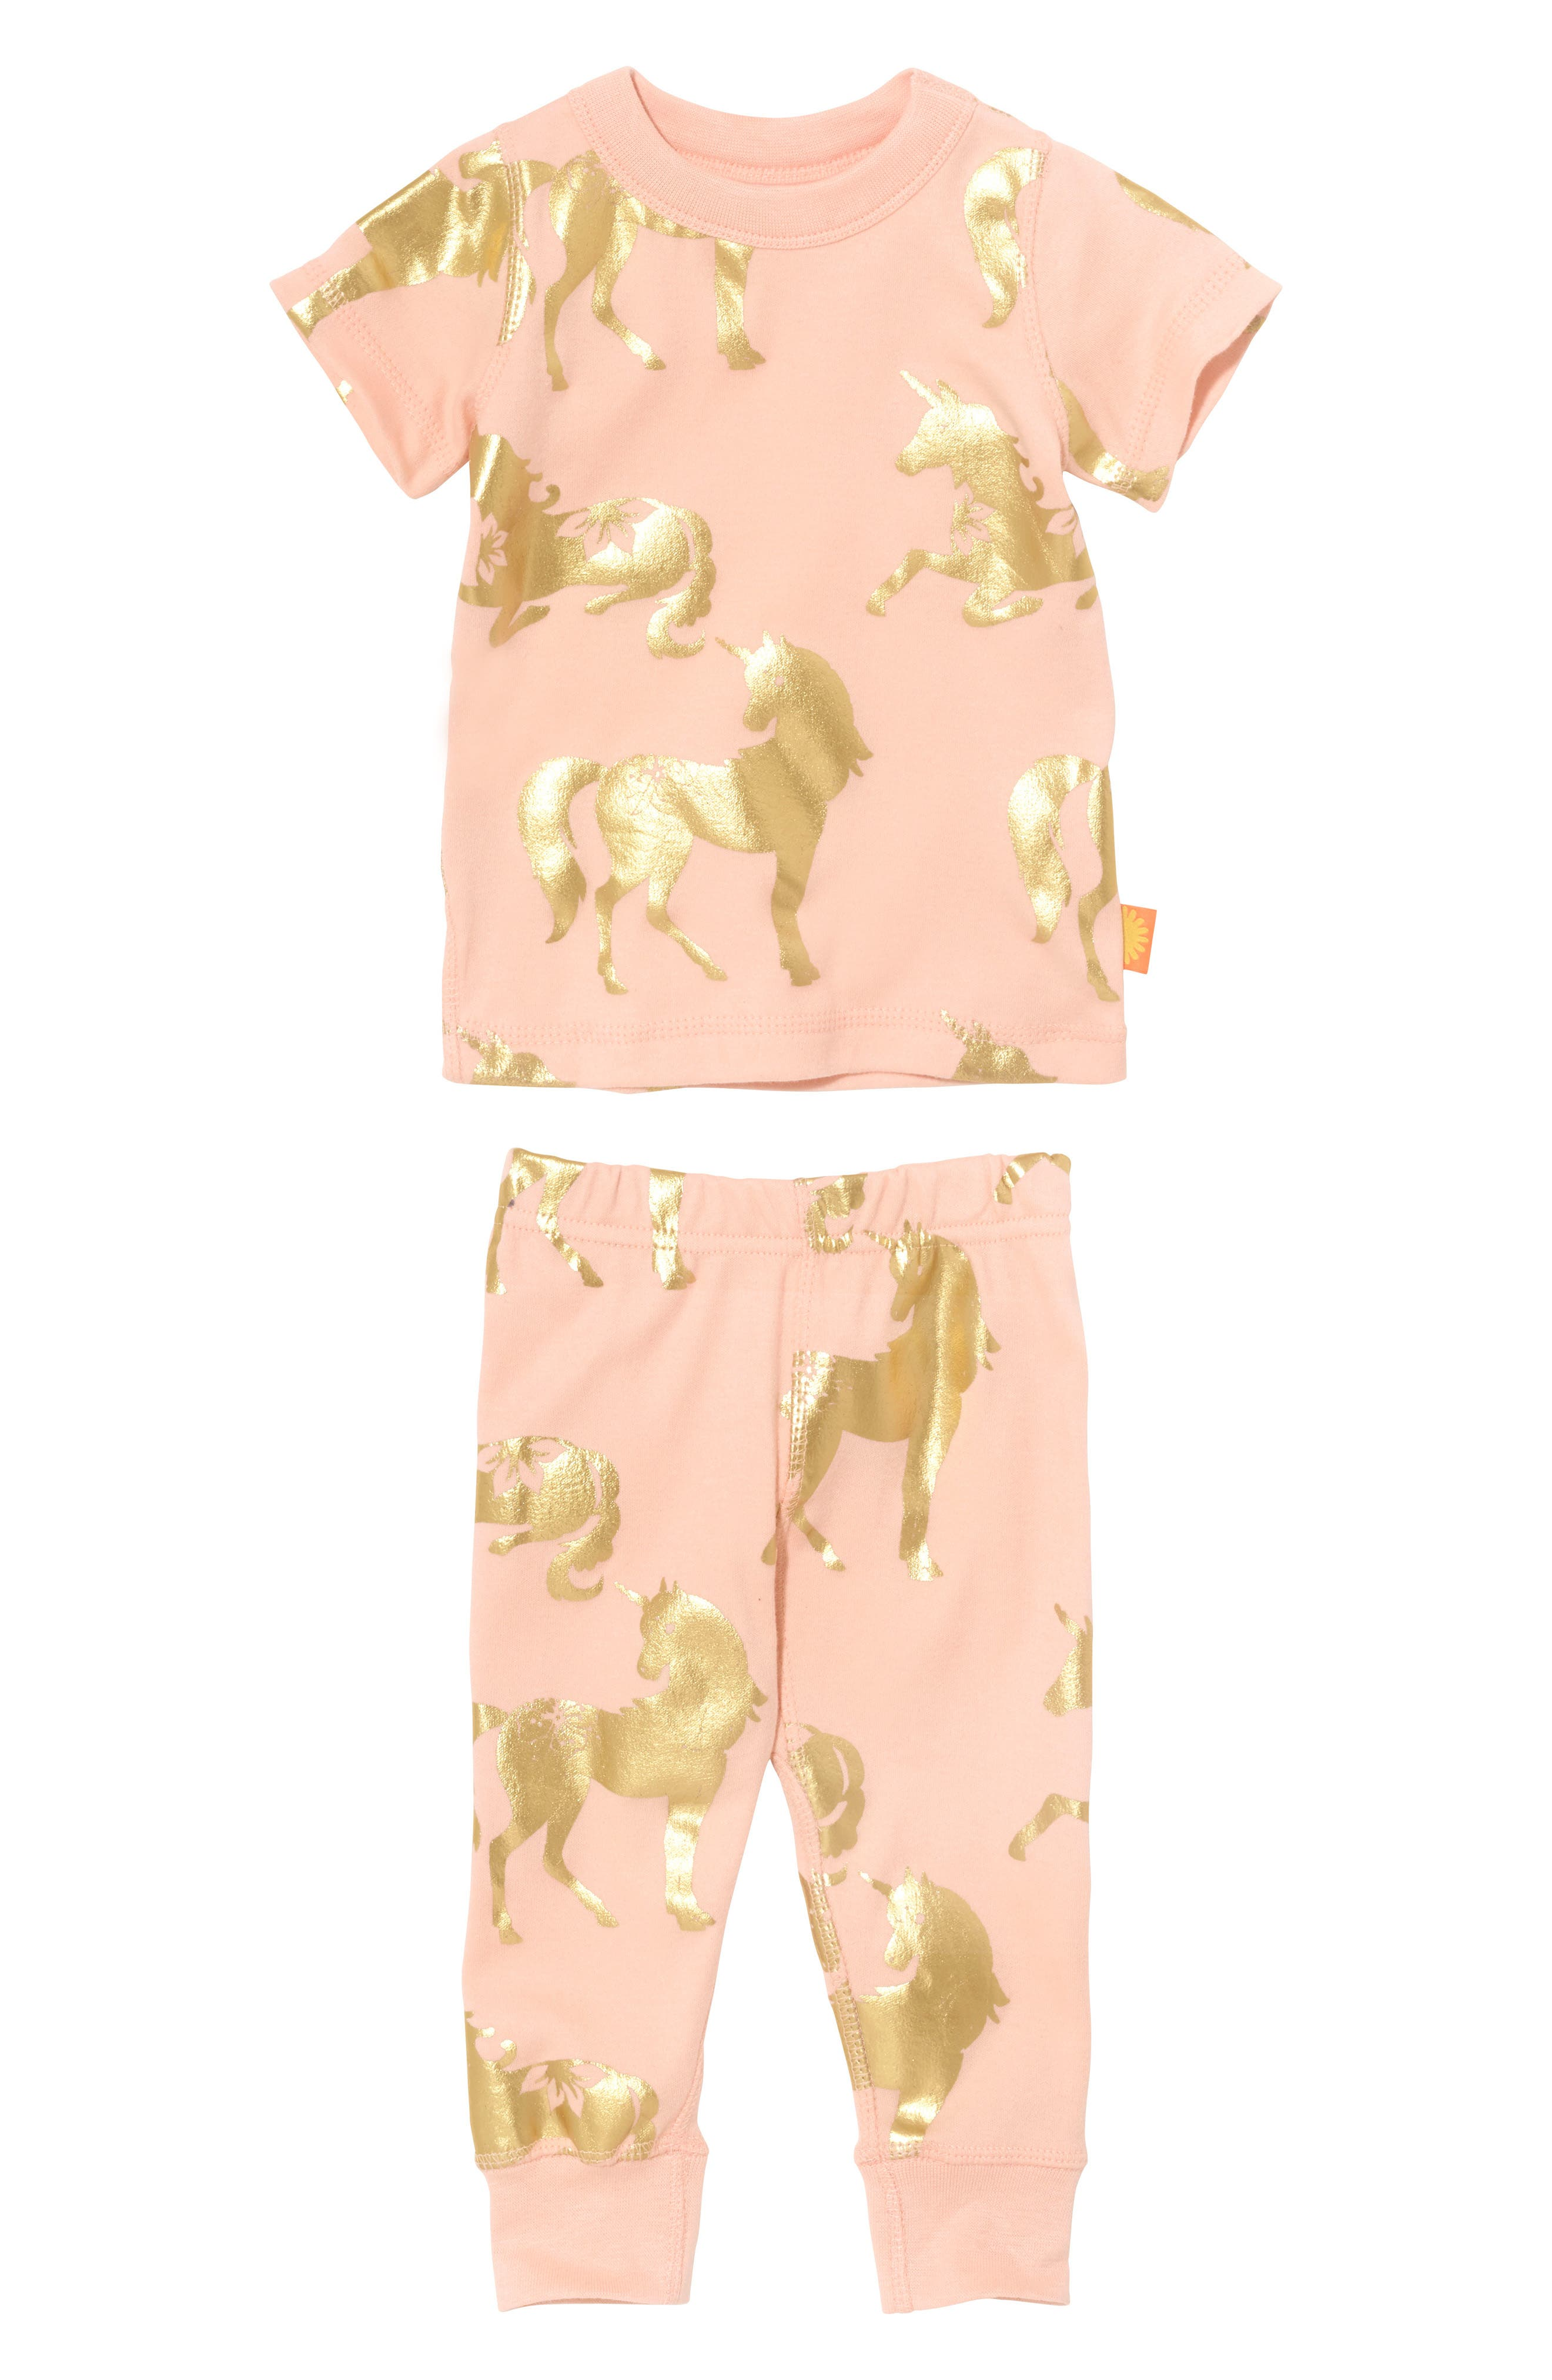 Main Image - Masalababy Unicorn Organic Cotton Fitted Two-Piece Pajamas (Baby Girls)